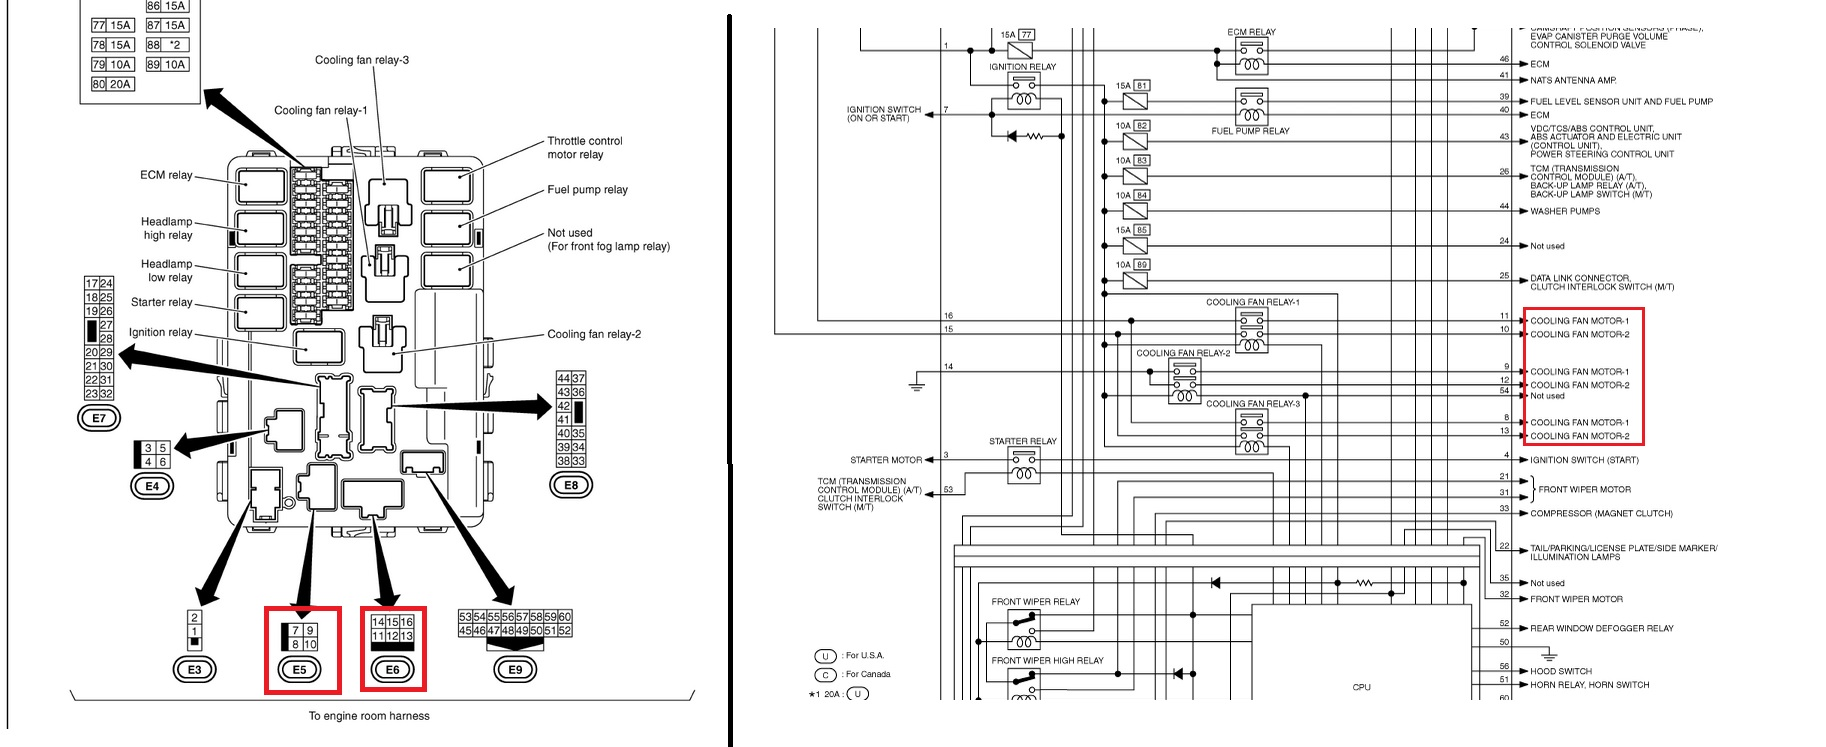 350z Wire Diagram - Wiring Diagram Expert Nissan Z Wire Harness Diagram on nissan quest headlight wiring, nissan fuse box diagram, 1990 nissan 300zx radio diagram, nissan transmission diagram, nissan car stereo wiring, nissan pickup ignition wiring harness, nissan wire color code abbreviations, nissan front brake caliper diagram, nissan combination switch diagram, nissan rogue fuse diagram, nissan wiring diagram, nissan battery cable wiring harness, nissan engine diagram, nissan seat diagram, wiring harness diagram, nissan bose stereo wiring codes, 2004 sentra wiring diagram,